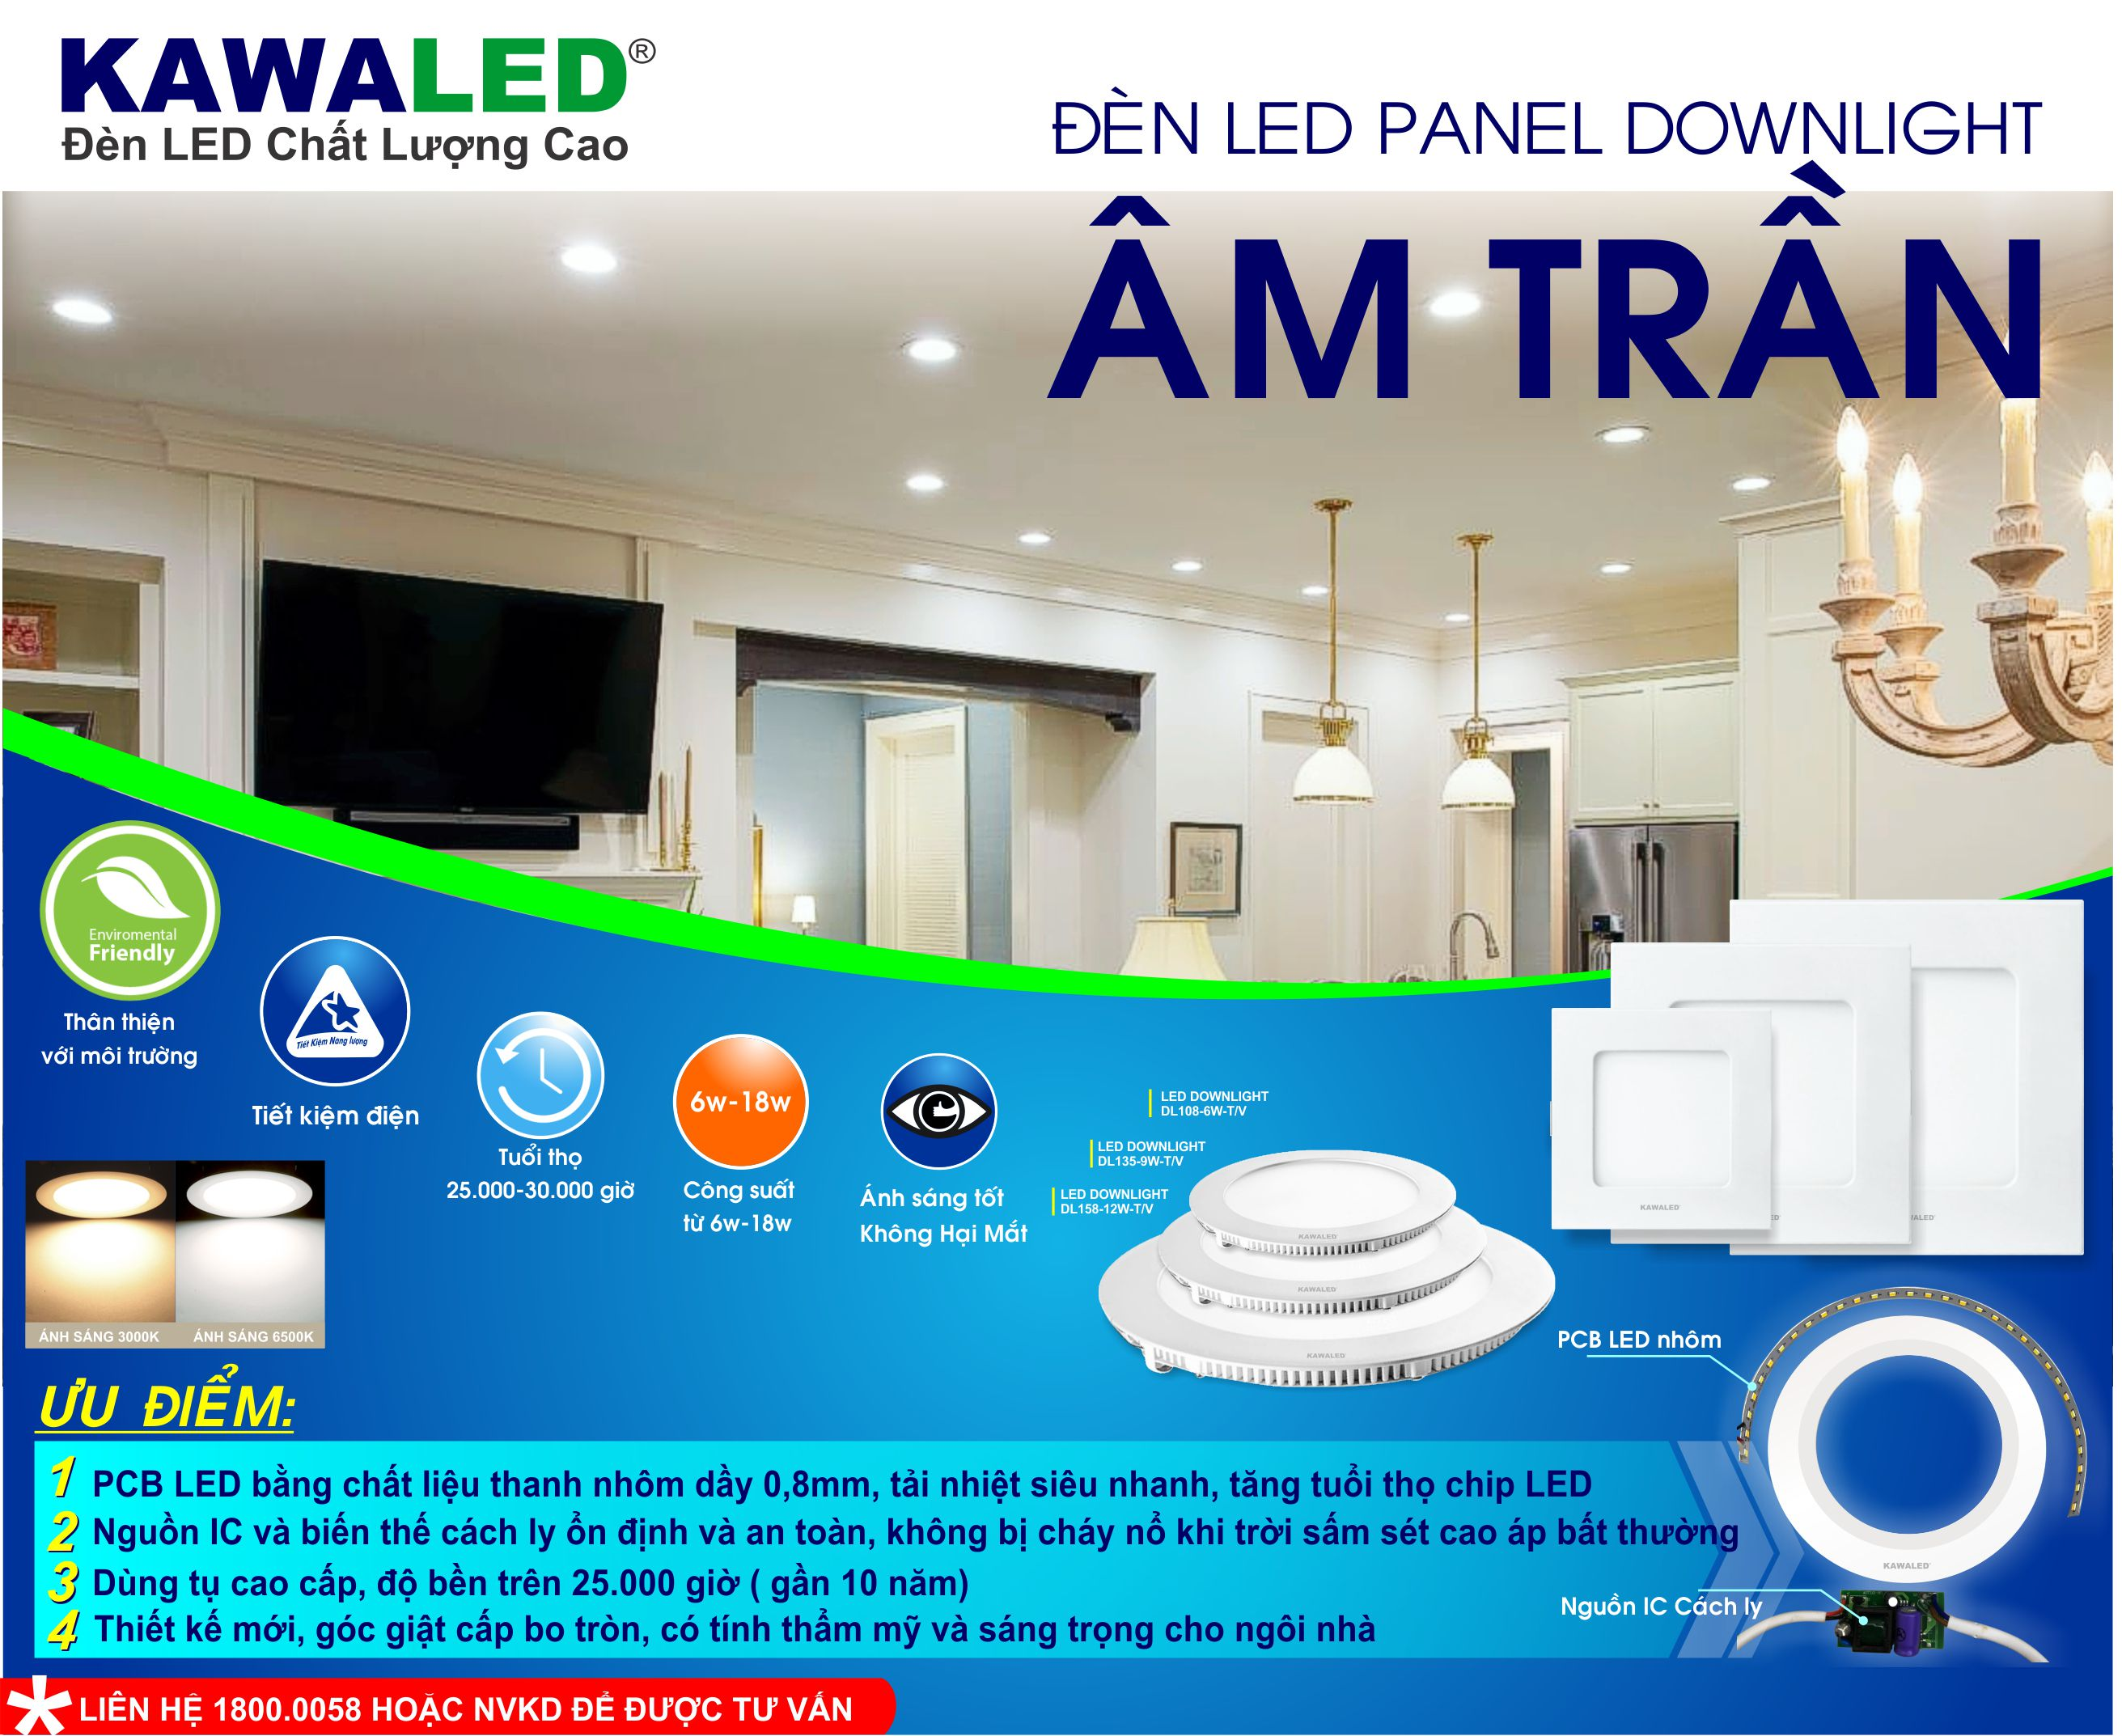 DOWNLIGHT AM TRAN.jpg